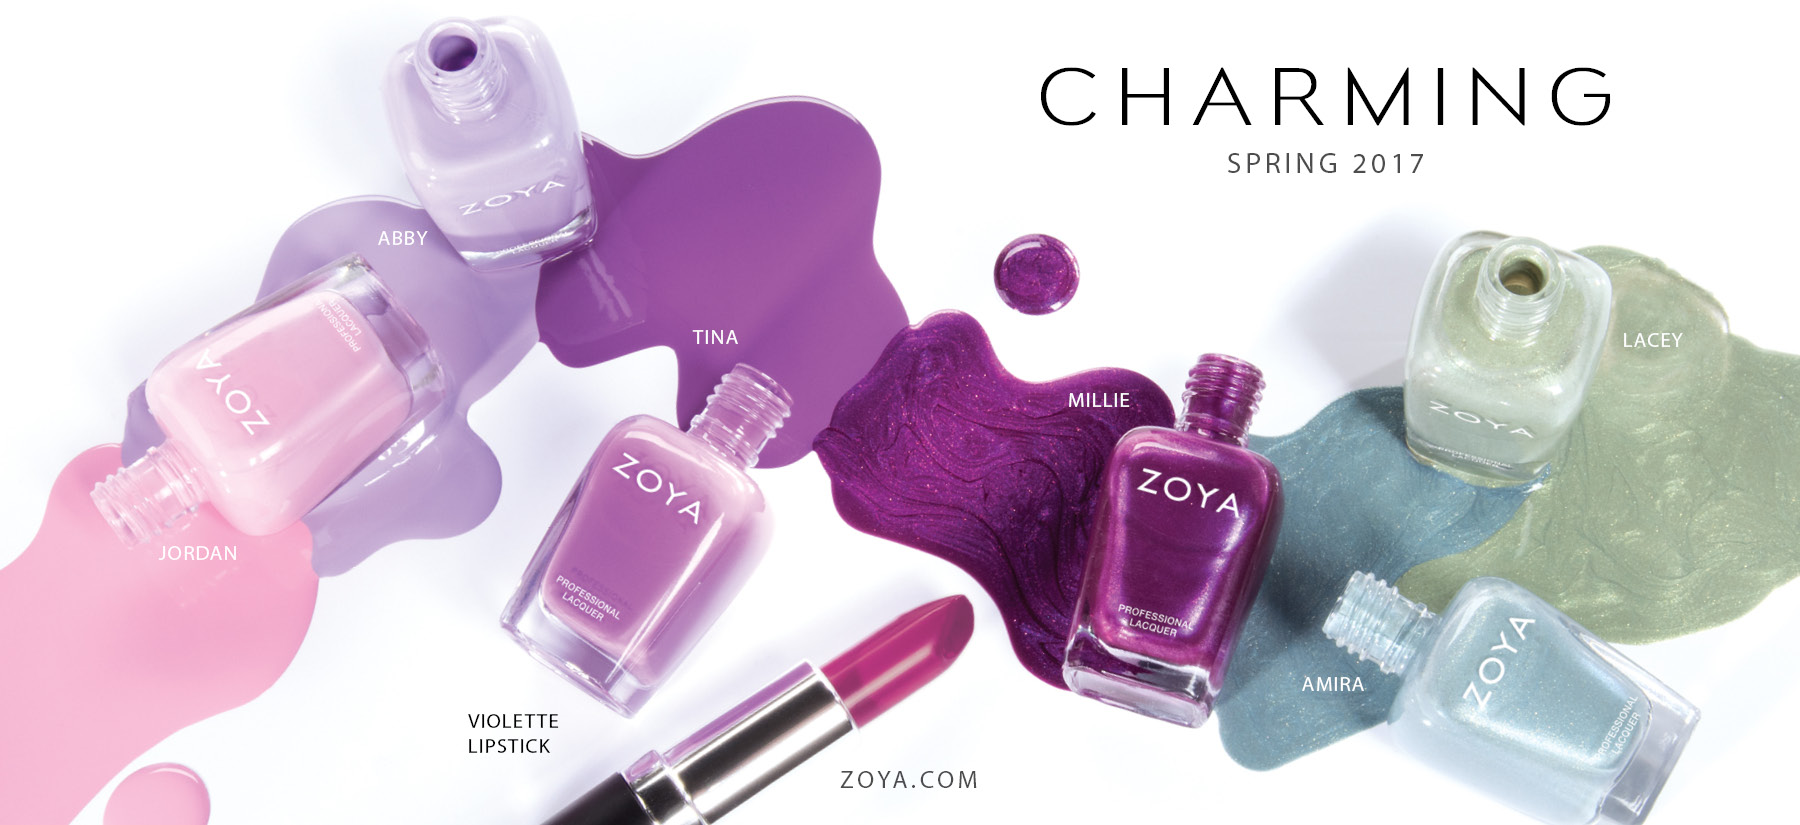 Zoya Charming Spring2017 Nail Polish Lipstick Hey And Beauty Enthusiasts Check Out The New Spring 2017